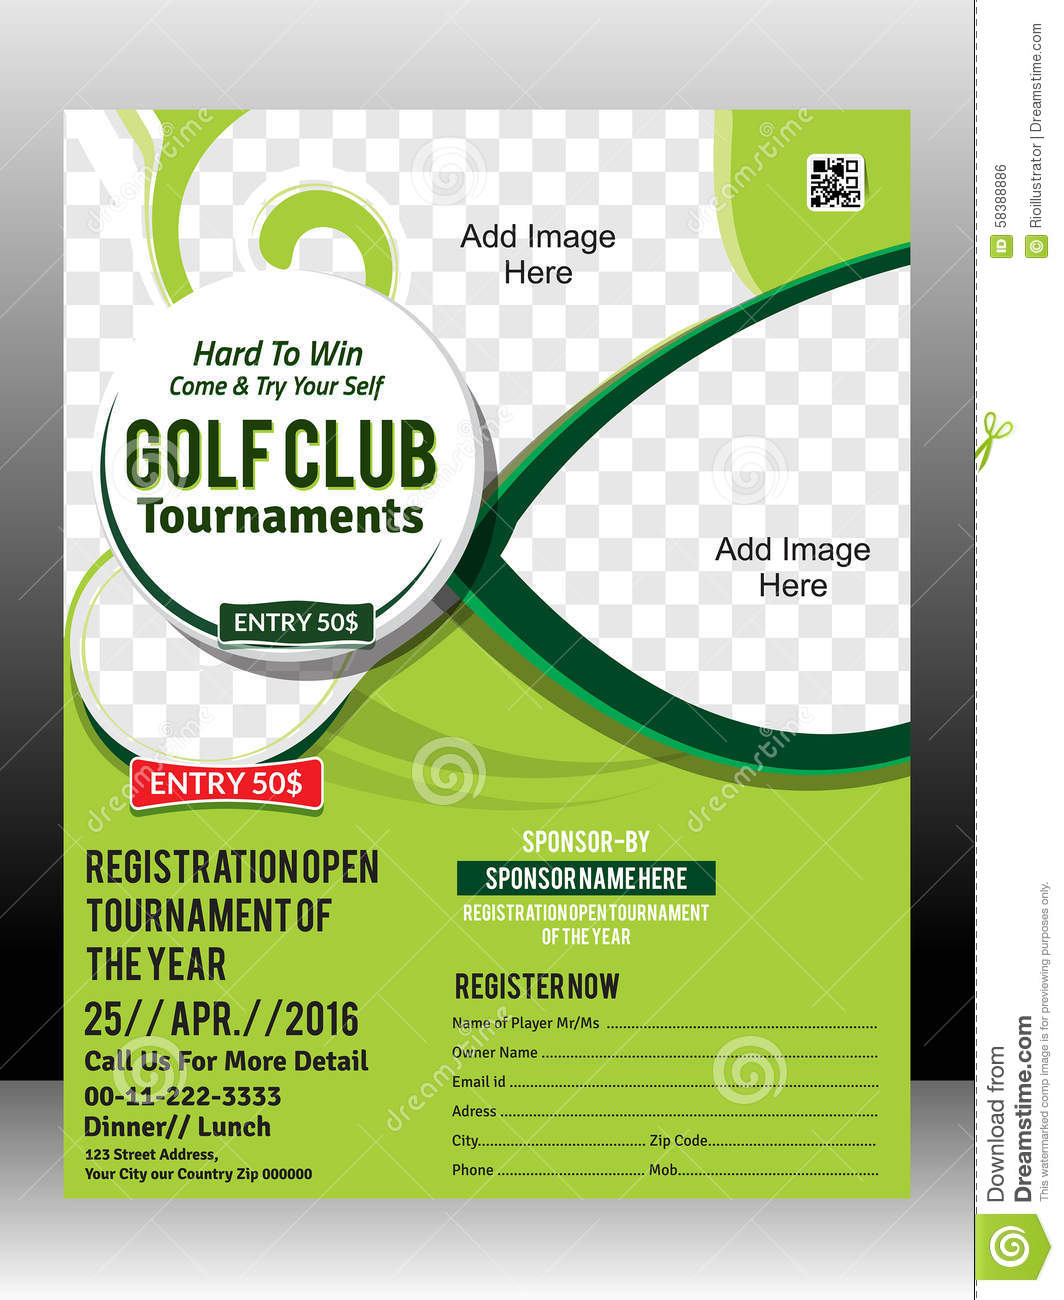 Lovely Golf Tournament Flyer Template Design Illustration